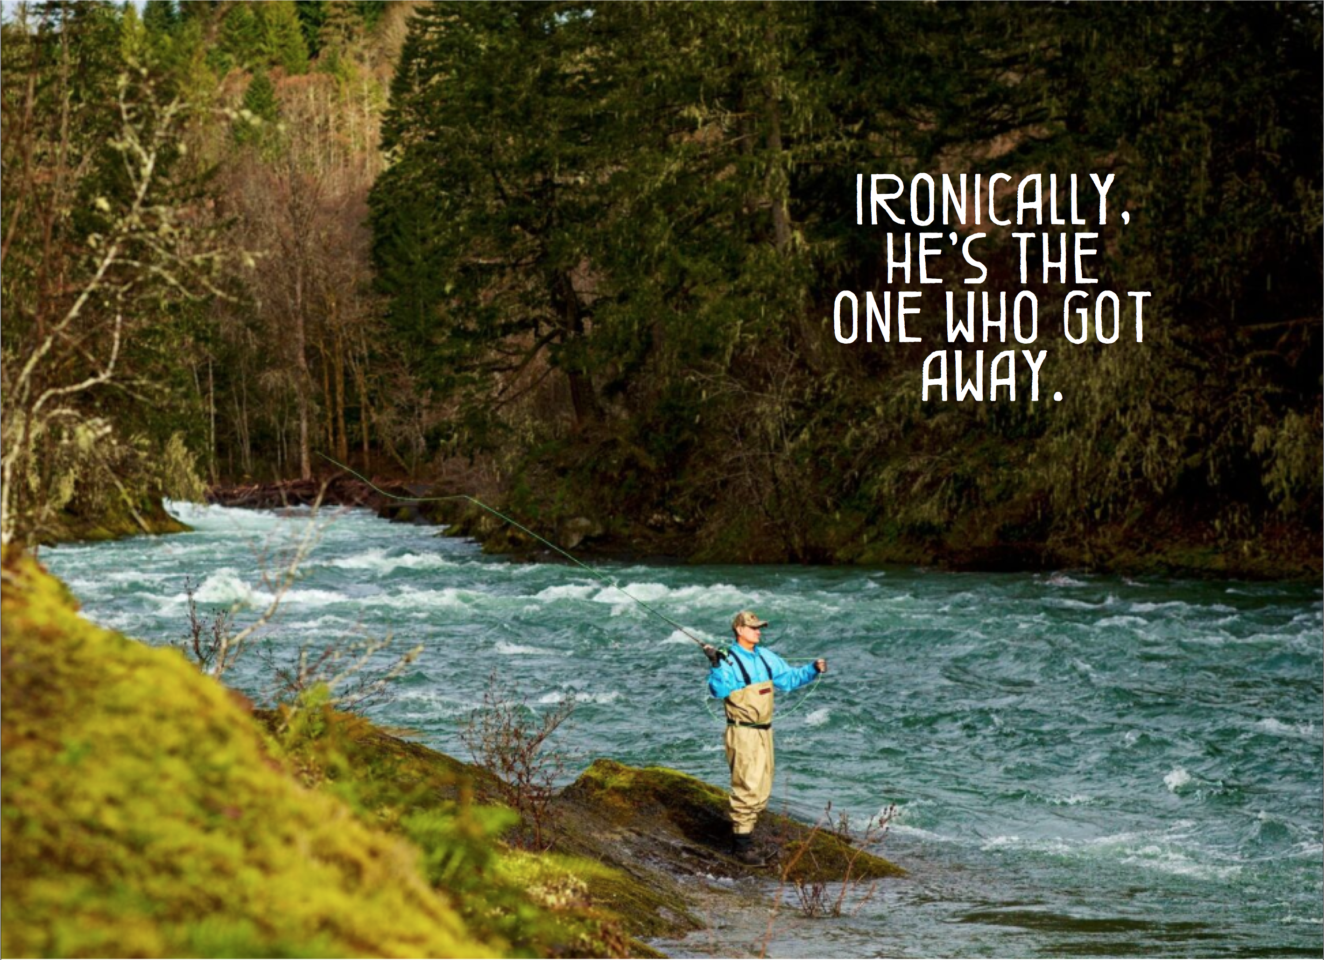 The Cowichan River has some of the best fly fishing on Vancouver Island